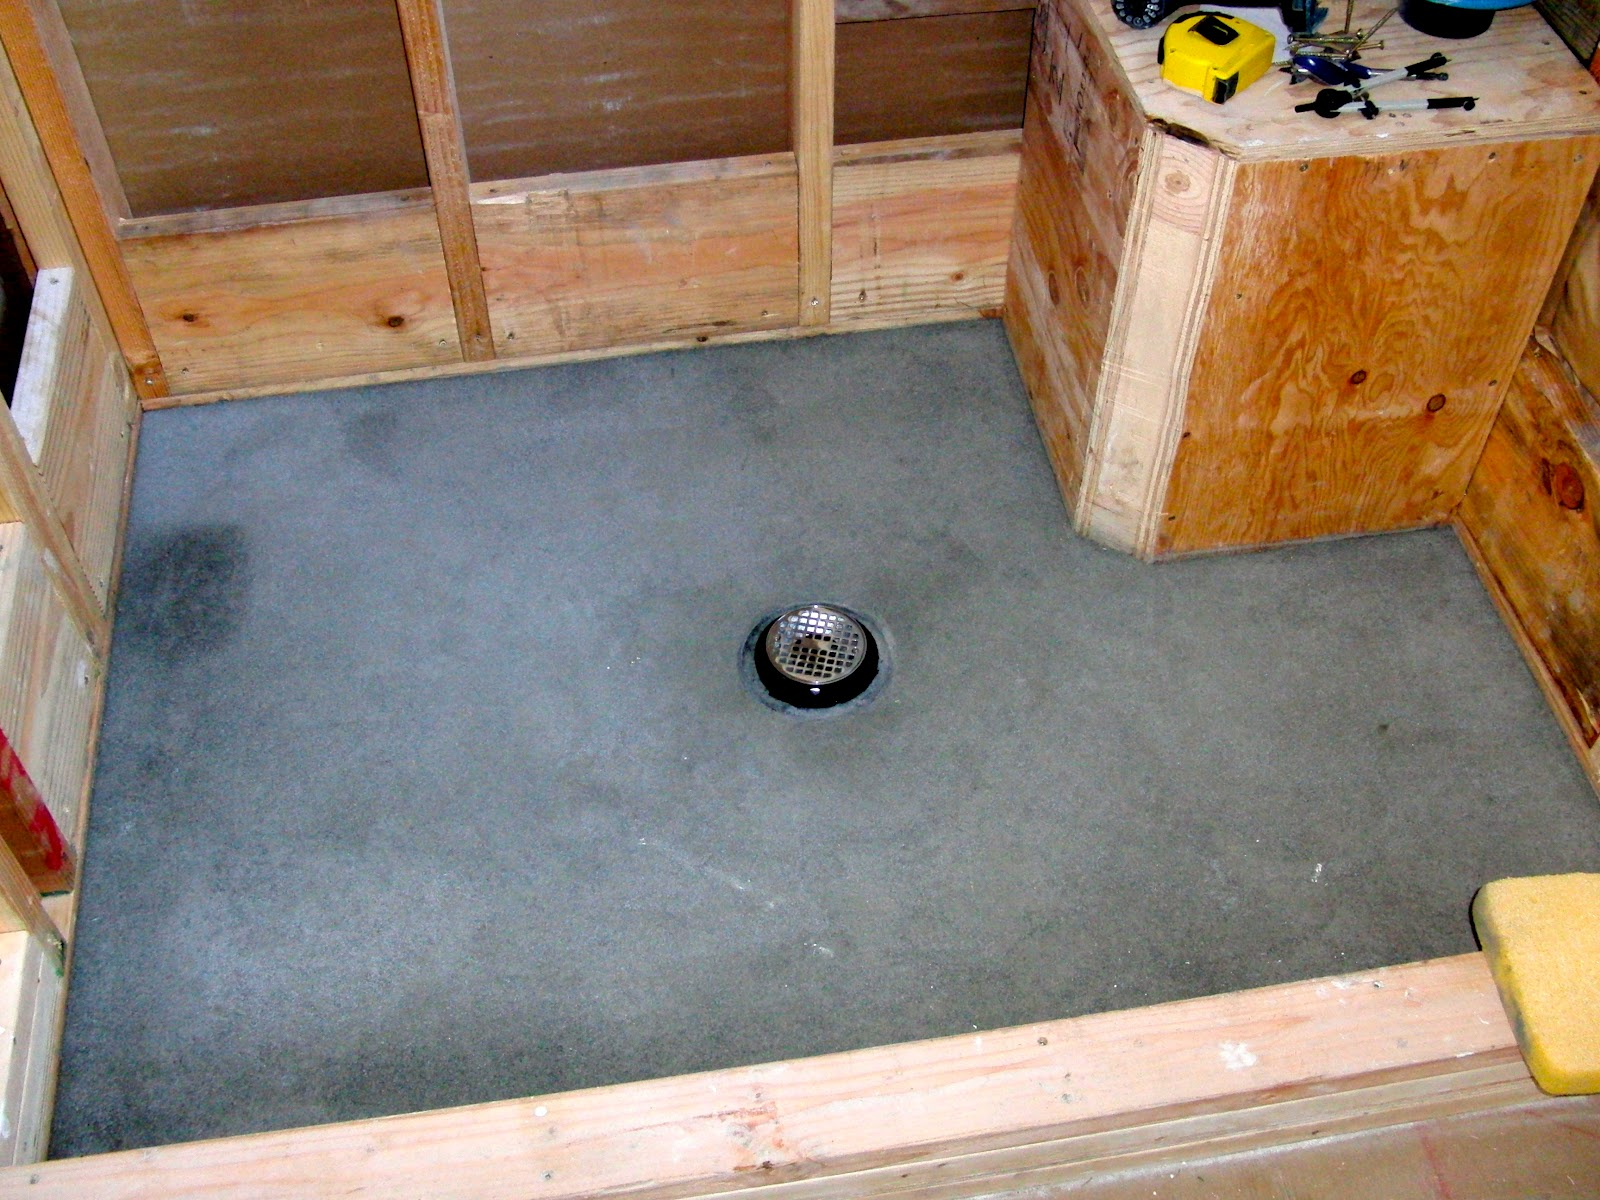 Building Mom's Yurt - A Blog: DIY Shower Building and ...